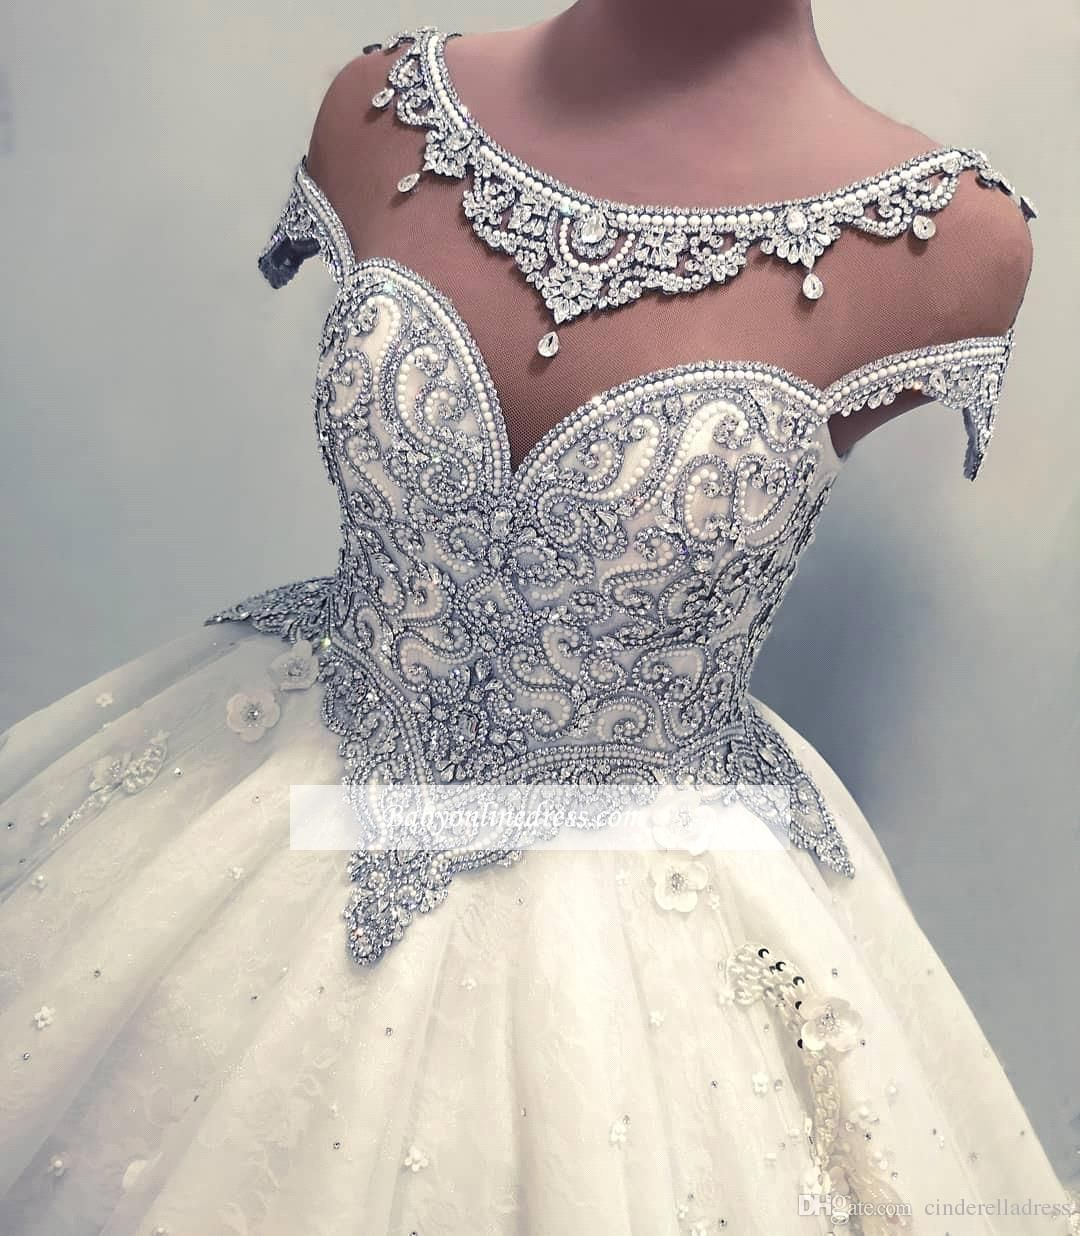 Luxury Real Images Cap Sleeves Ball Gown Wedding Dresses 2019 Shiny Crystals Sparkly Sequin Rhinestones Bridal Gowns Bc0019 Red Prom Dresses Short Dresses From Wedding Dress Sleeves Short Red Prom [ 1236 x 1080 Pixel ]